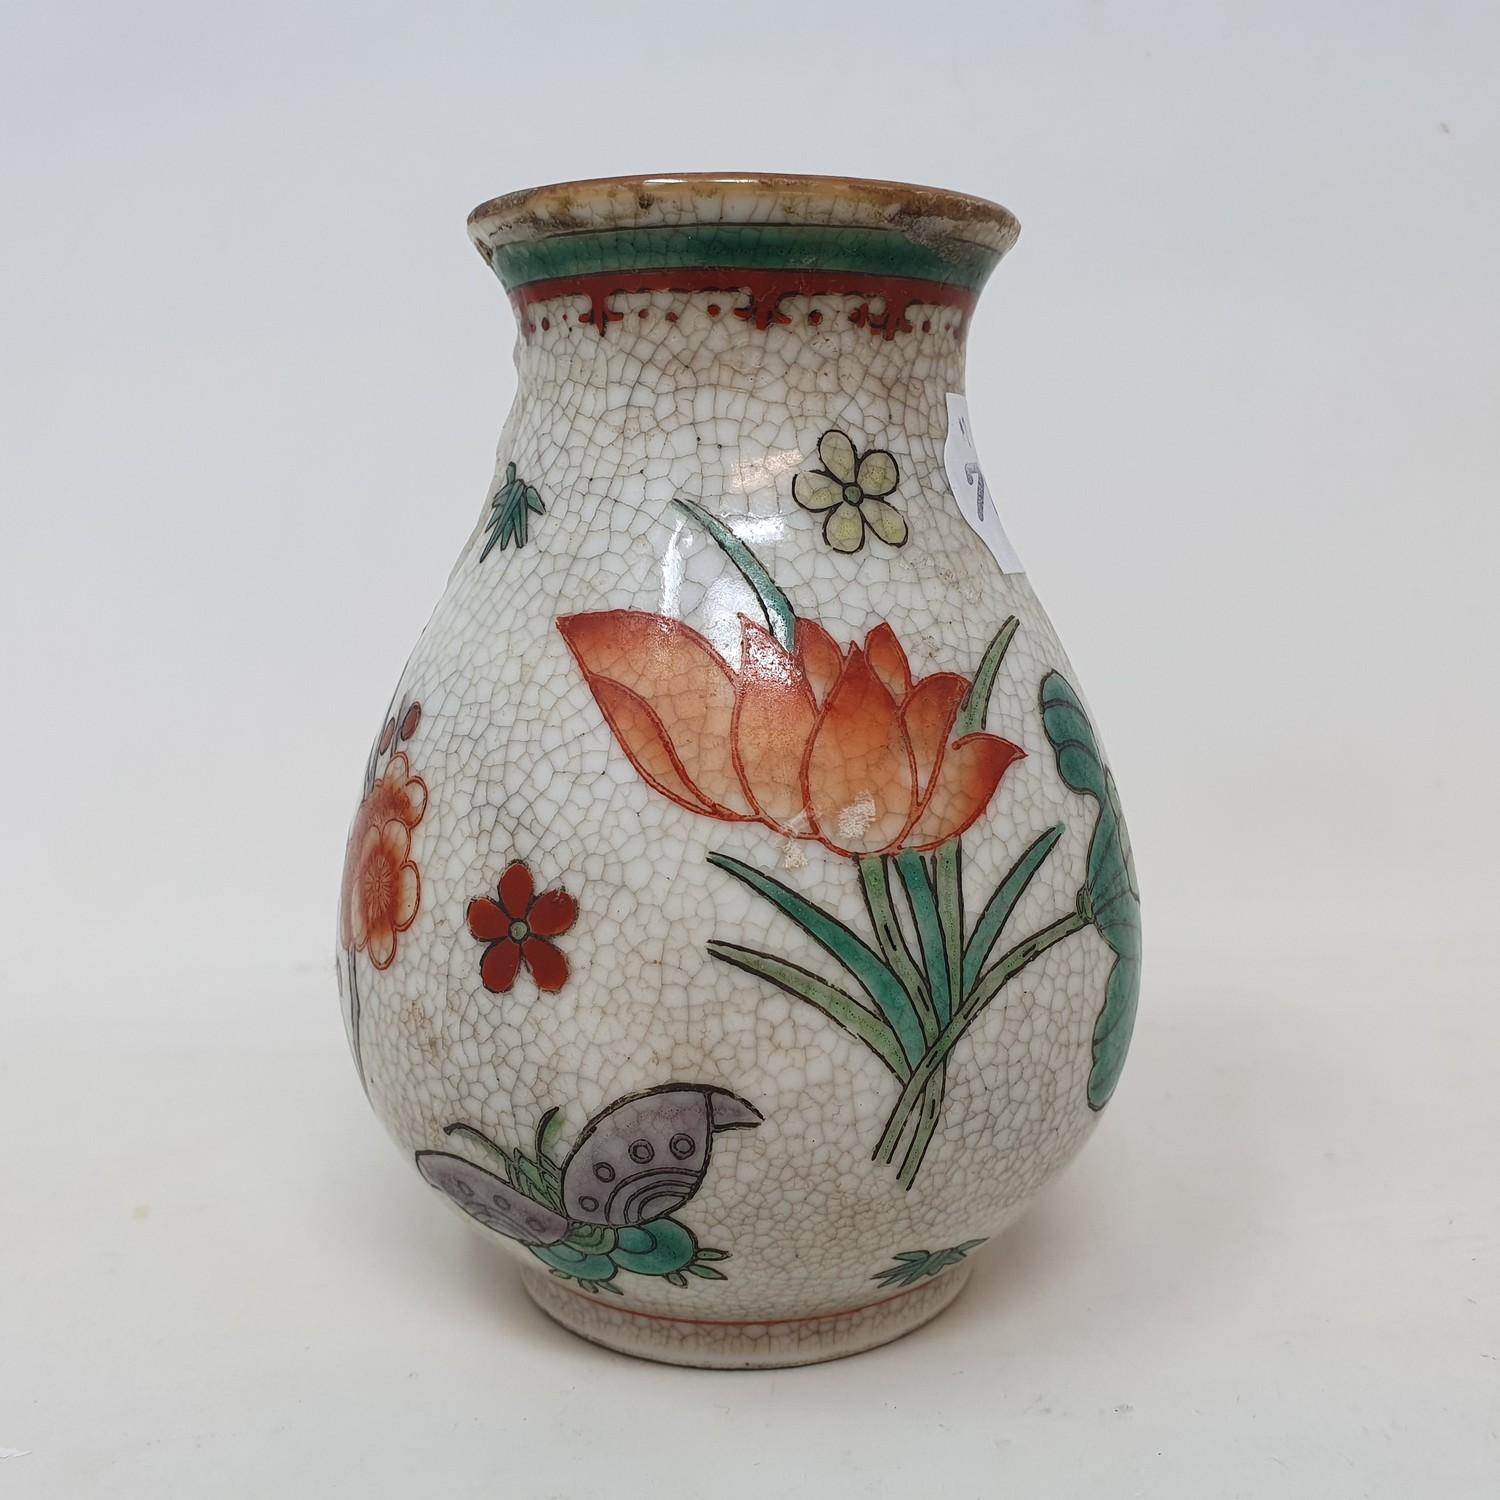 A Chinese polychrome vase, character mark to base, 13 cm high - Image 2 of 4